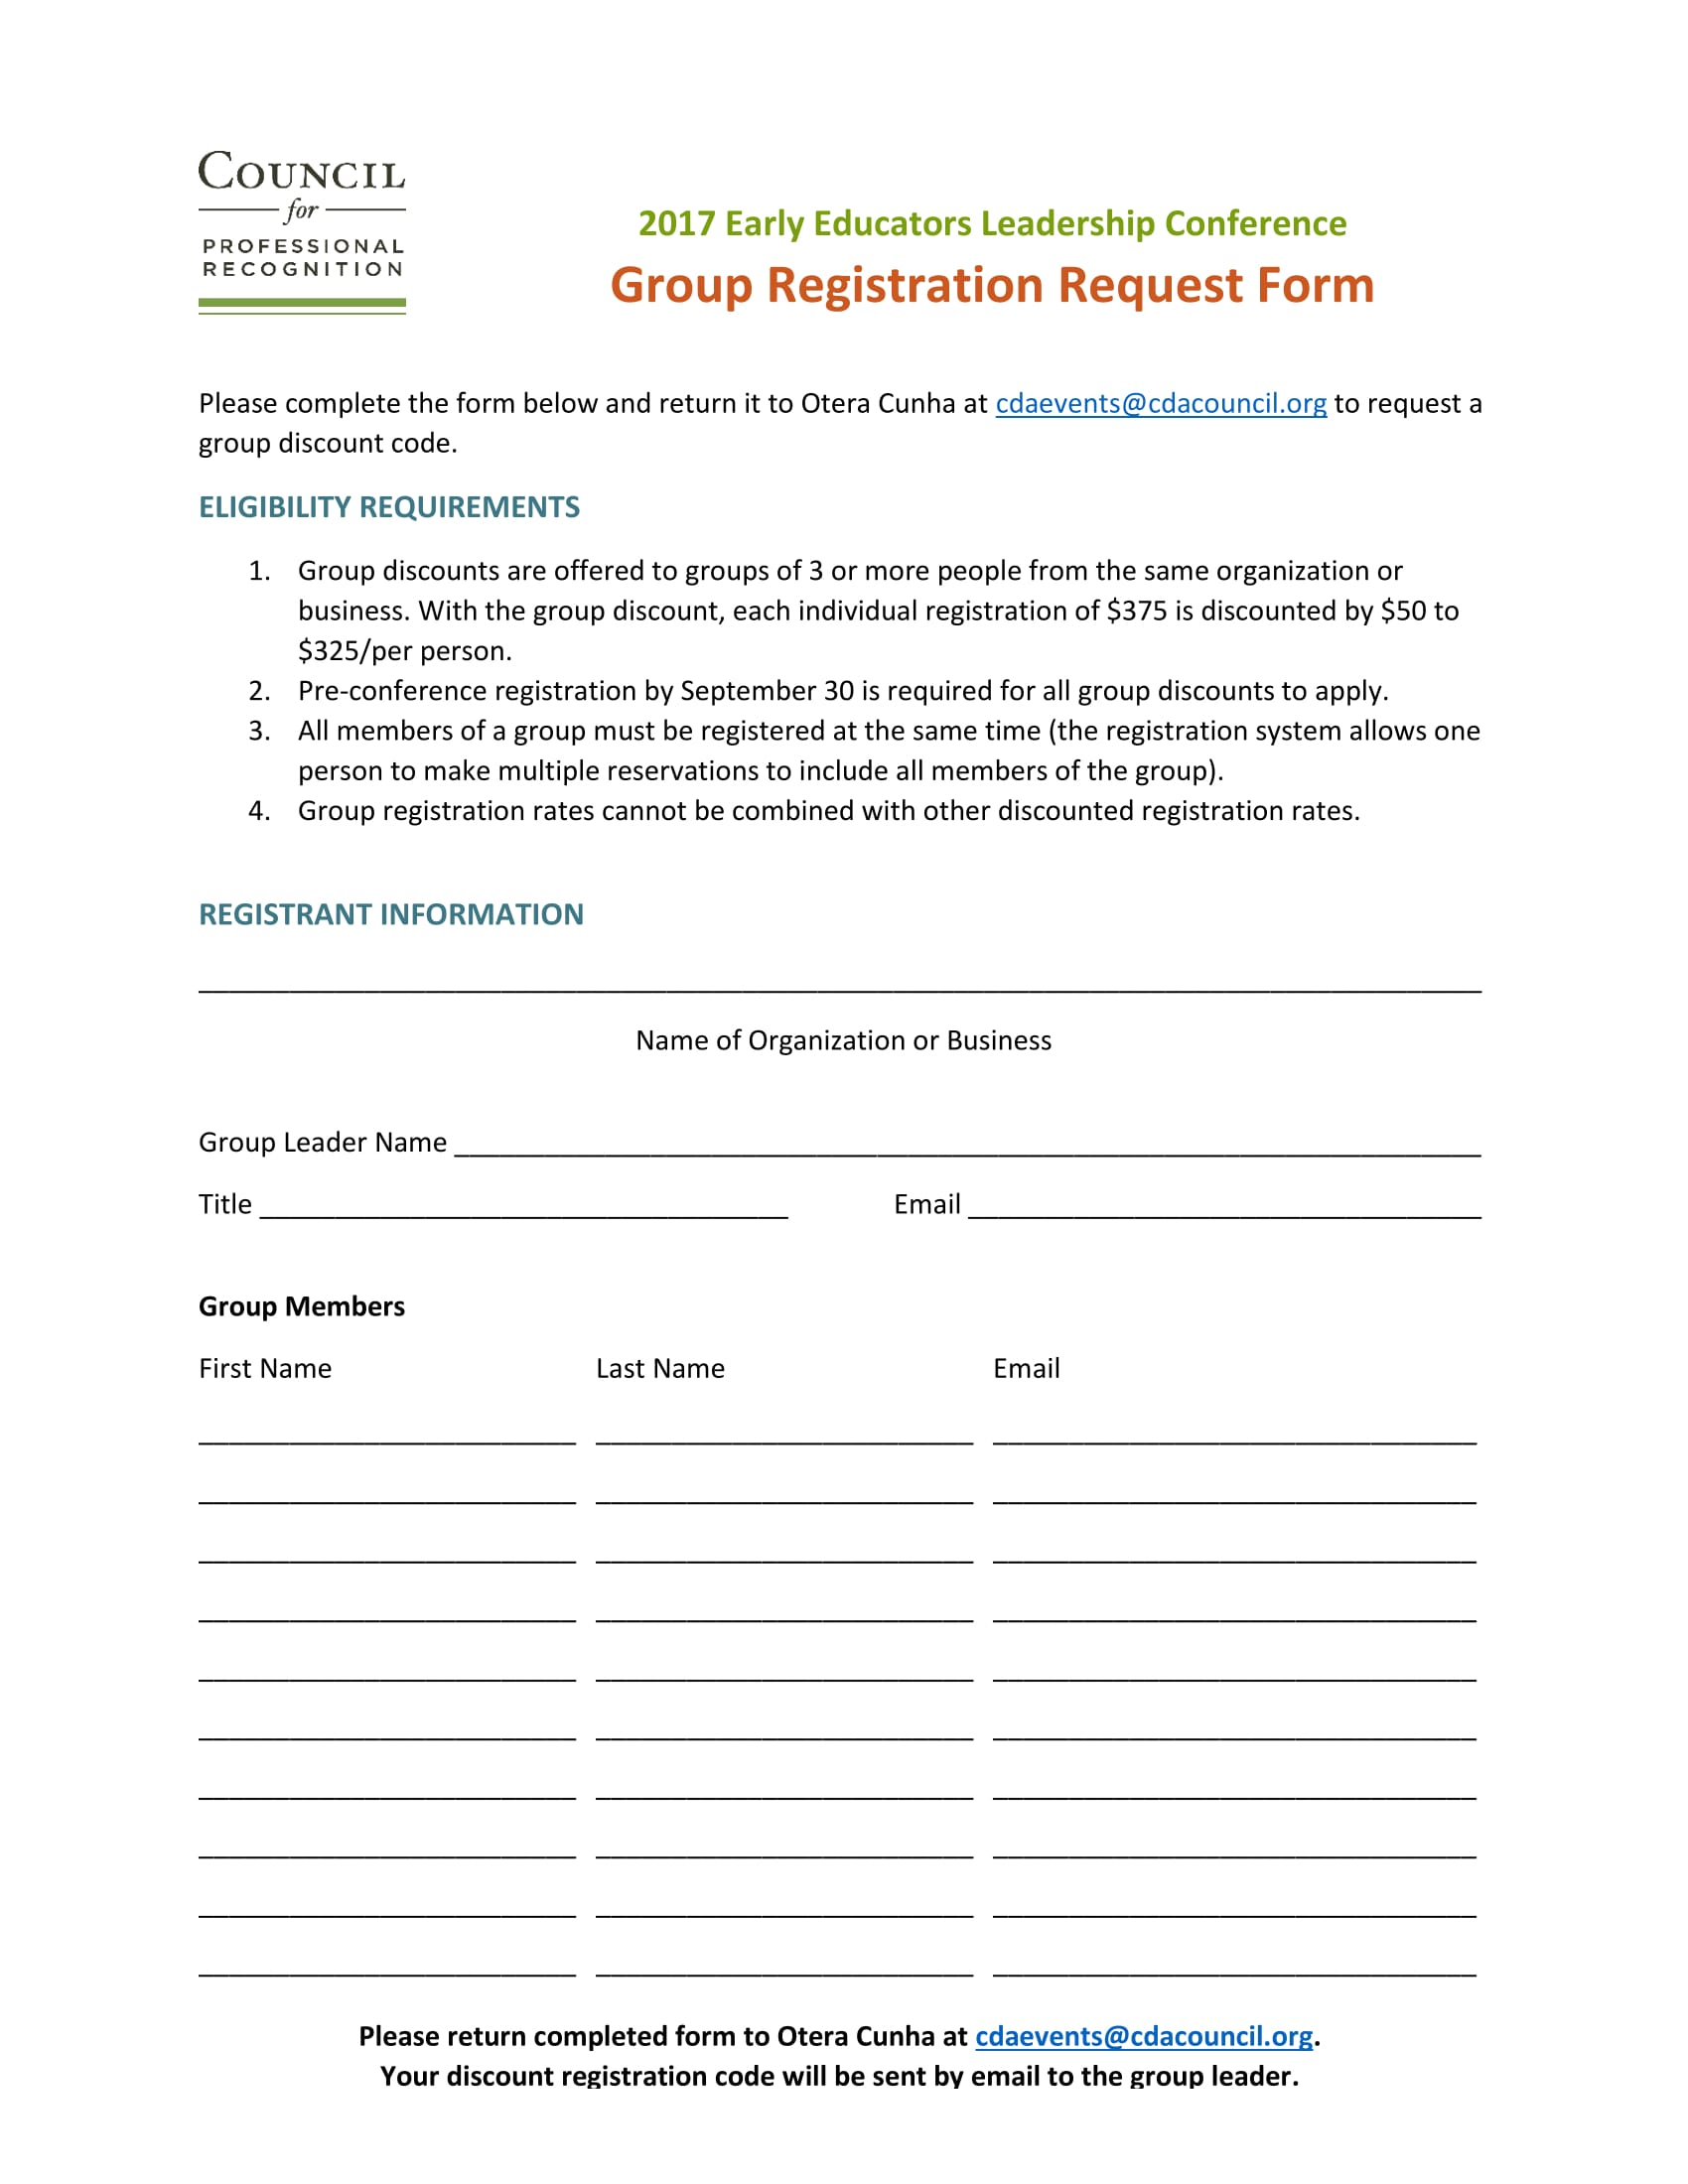 group registration request form 1